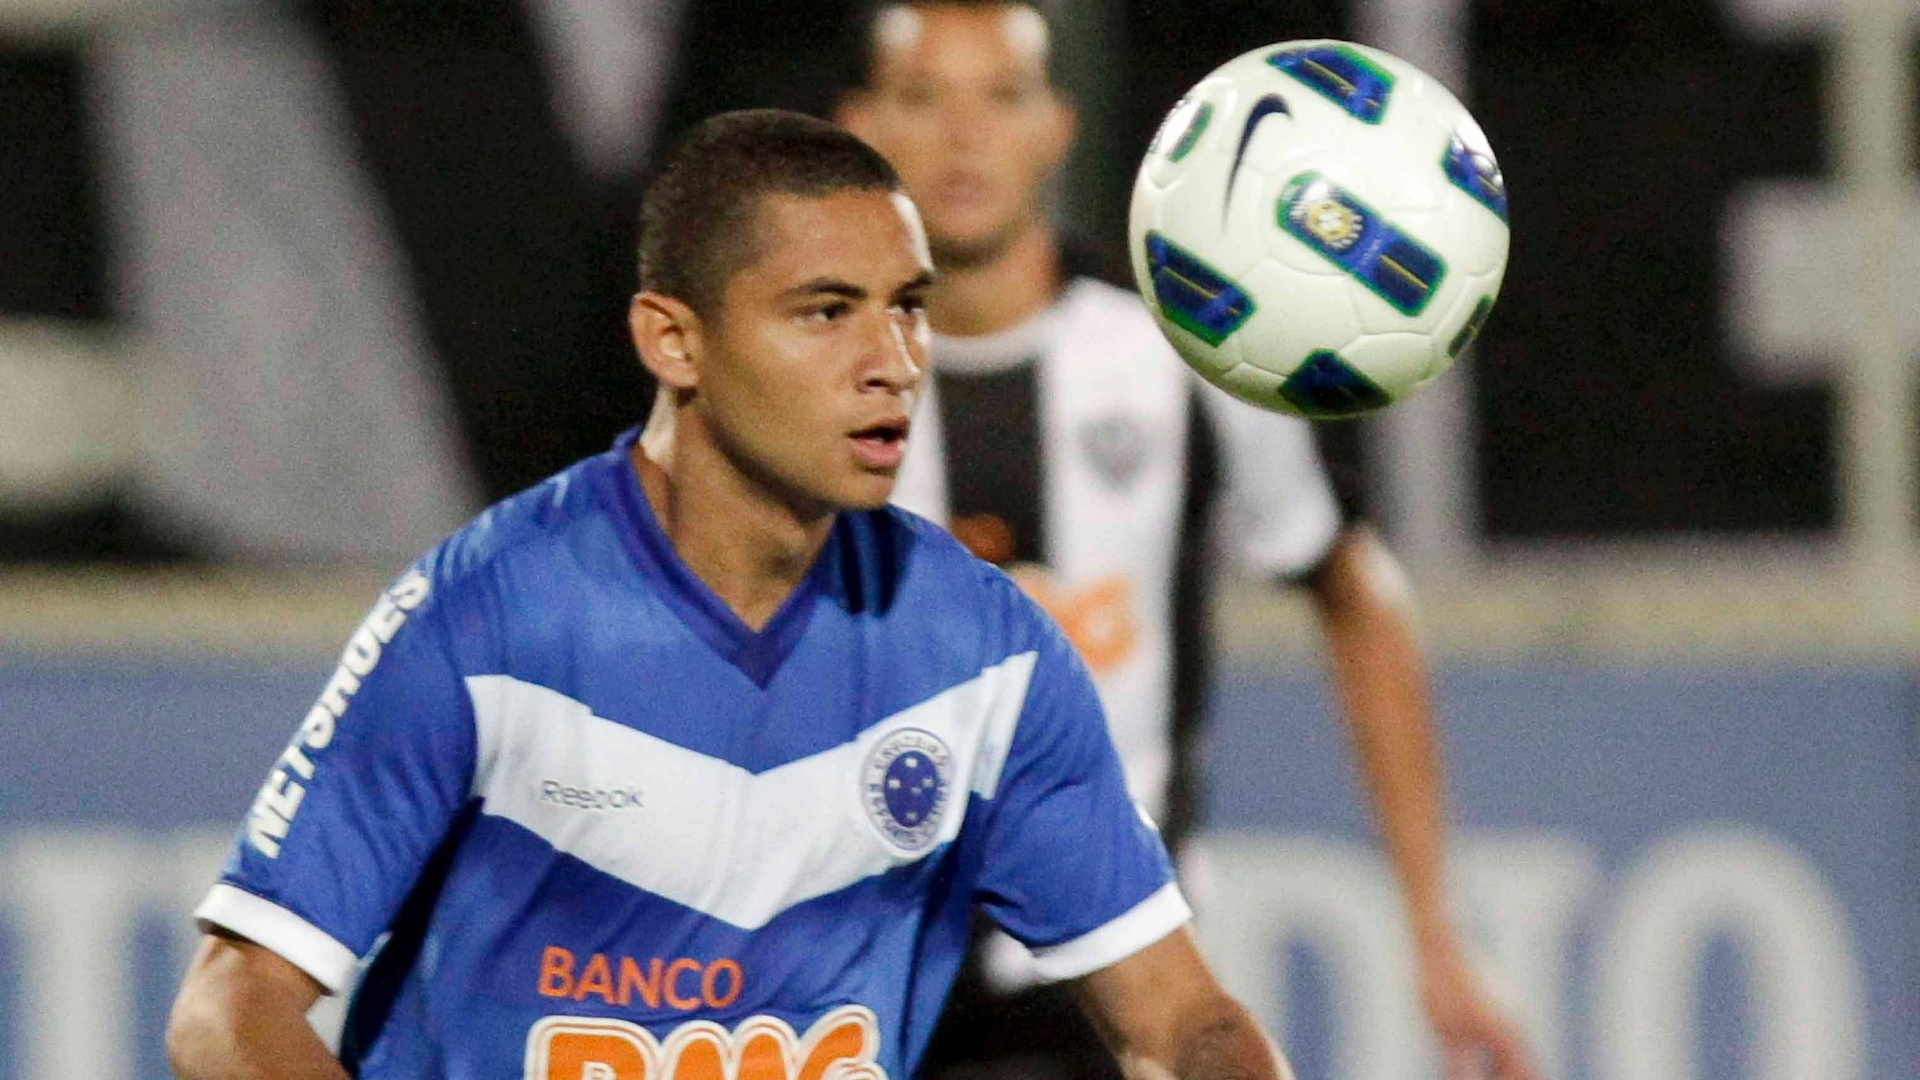 Wellington Paulista, atacante do Cruzeiro, domina a bola no clssico do Atltico-MG